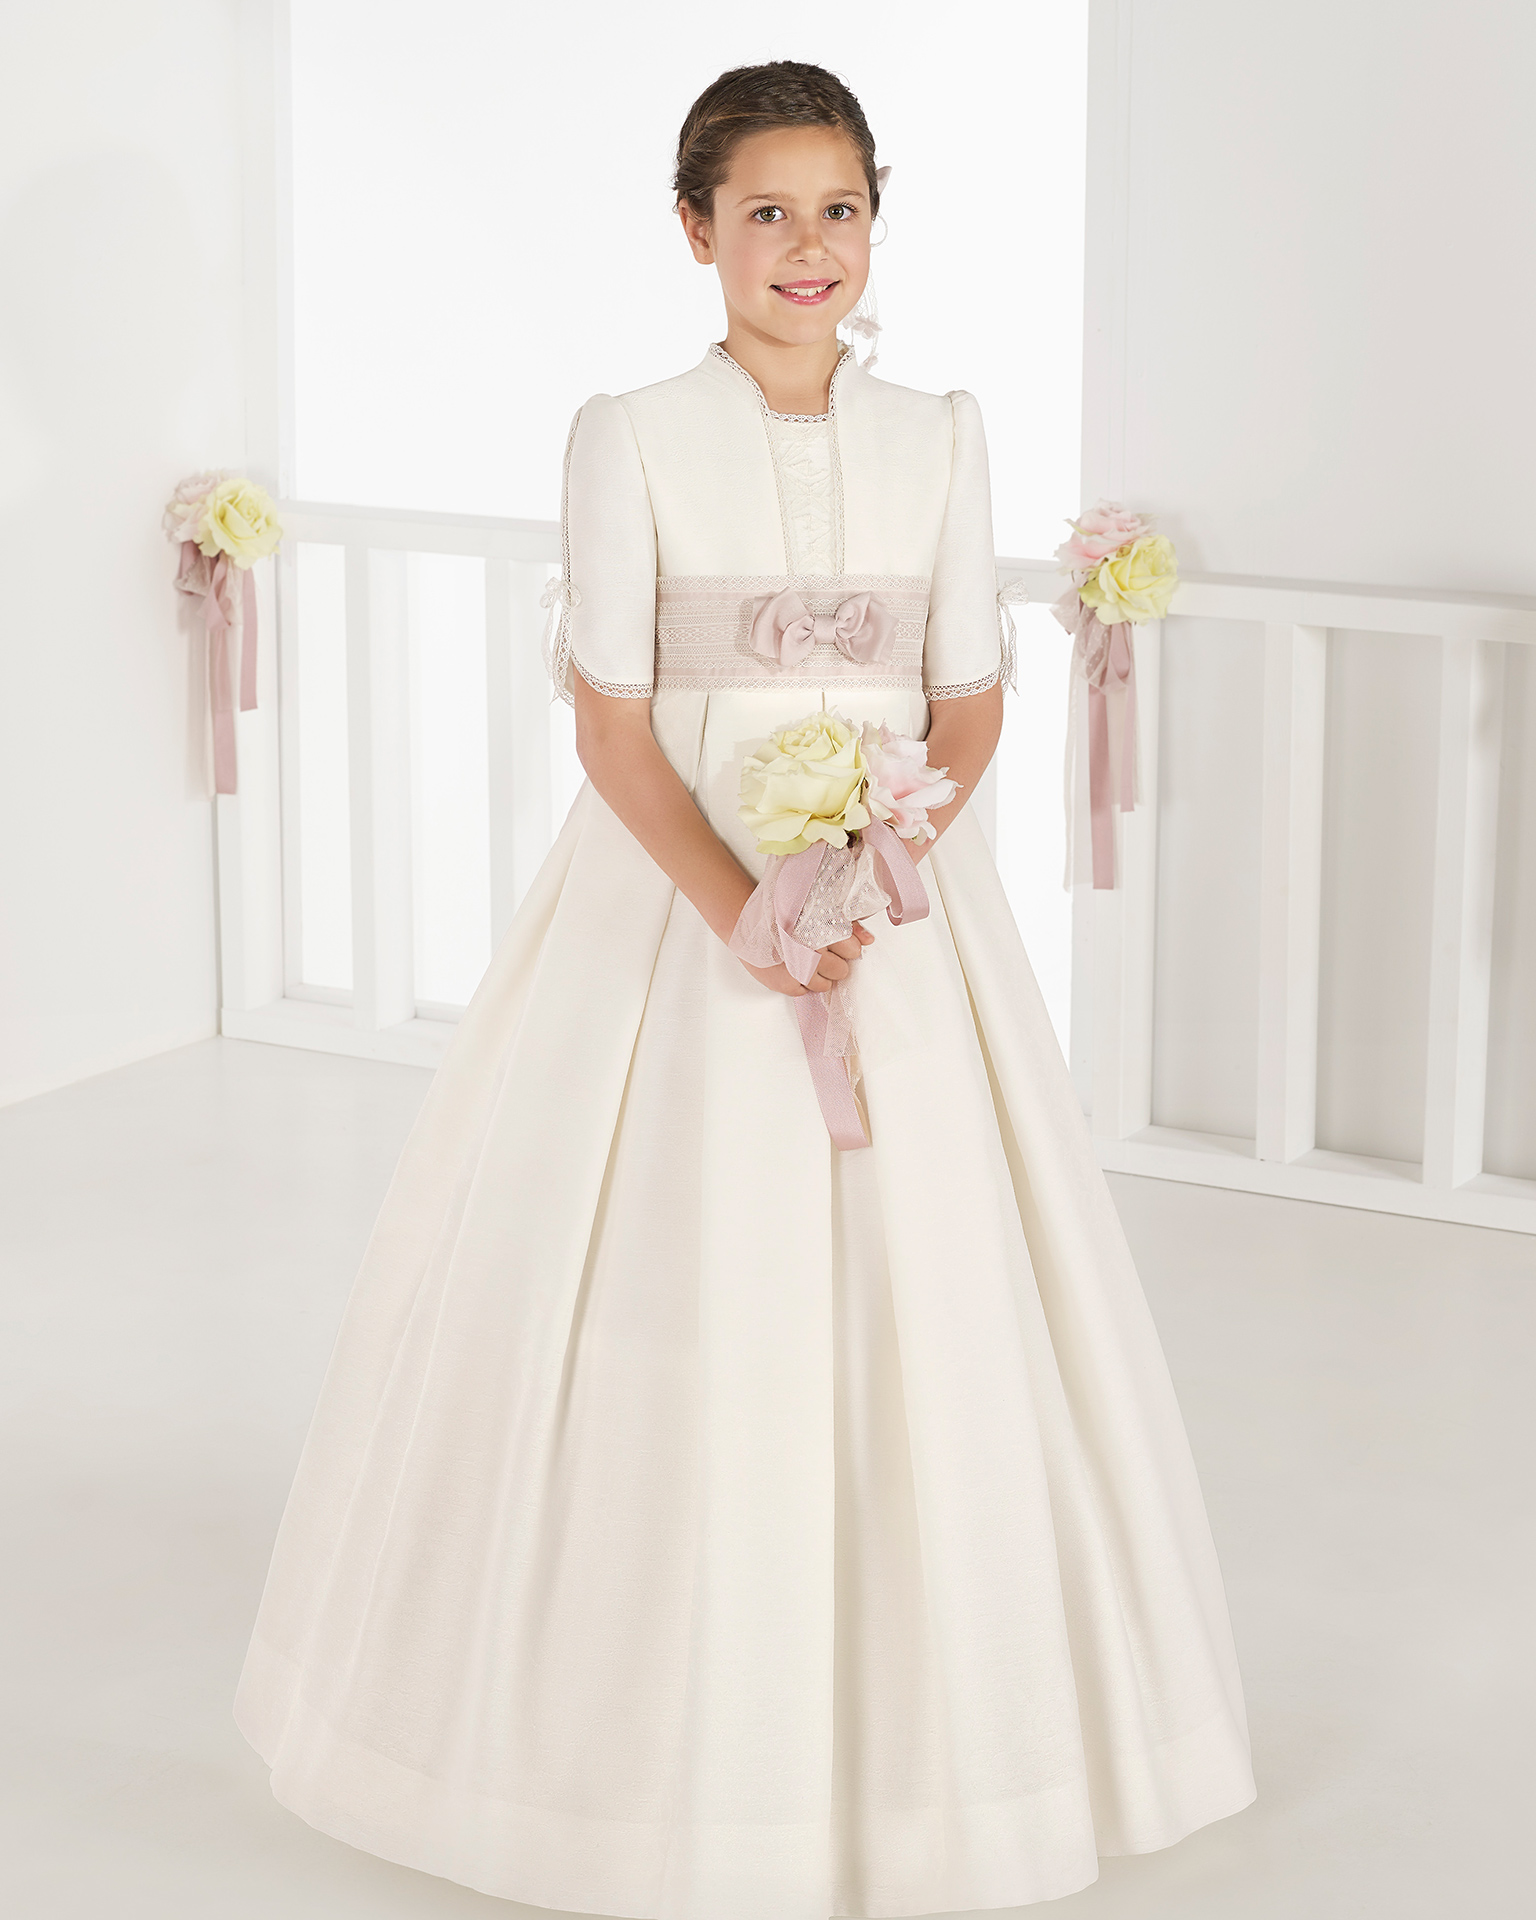 Ballgown-style brocade First Communion or bridesmaid's dress with empire waist, in ivory. 2018 AIRE COMUNION Collection.